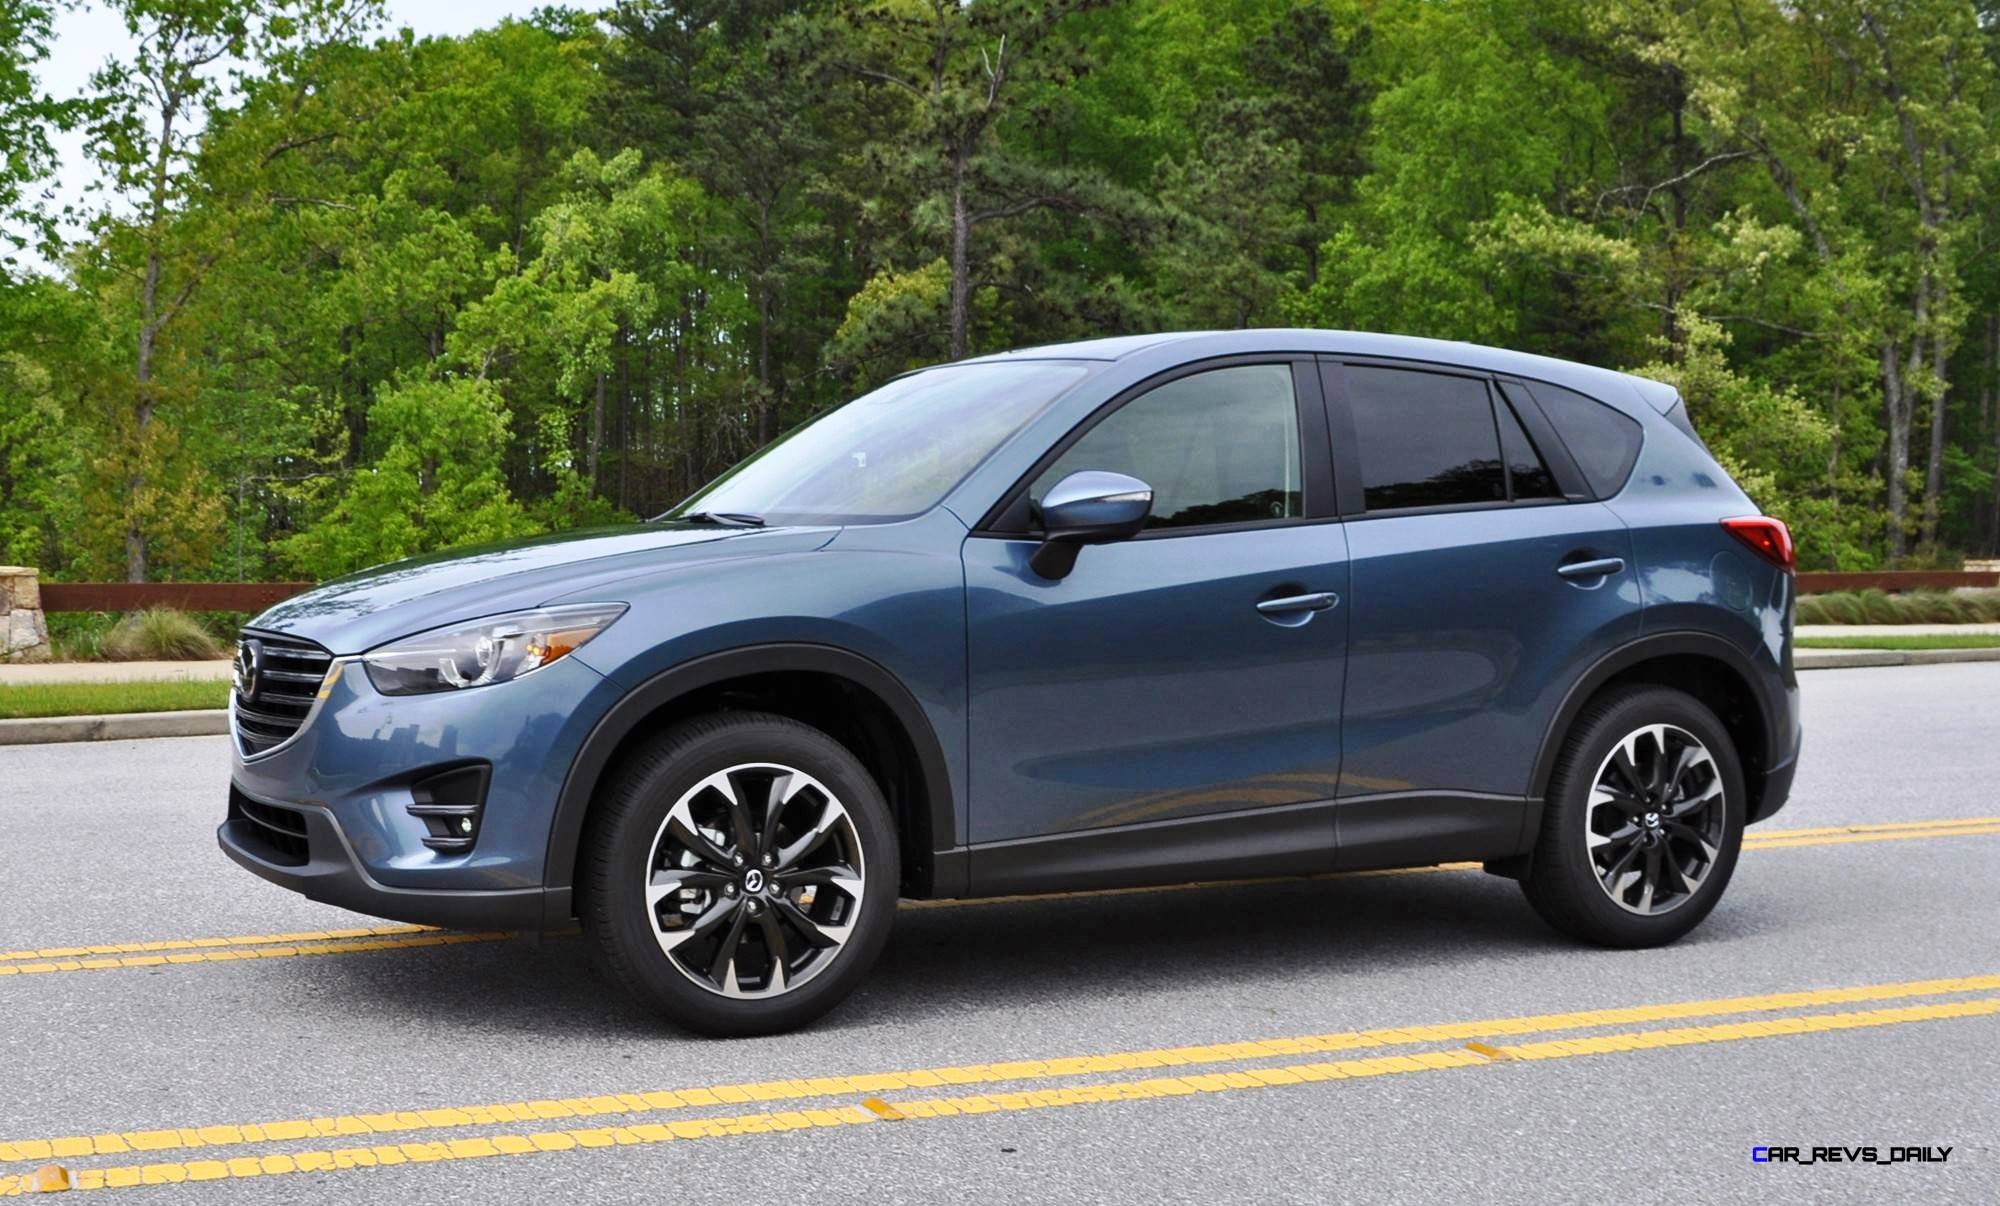 2016 mazda cx-5 grand touring fwd 72 »